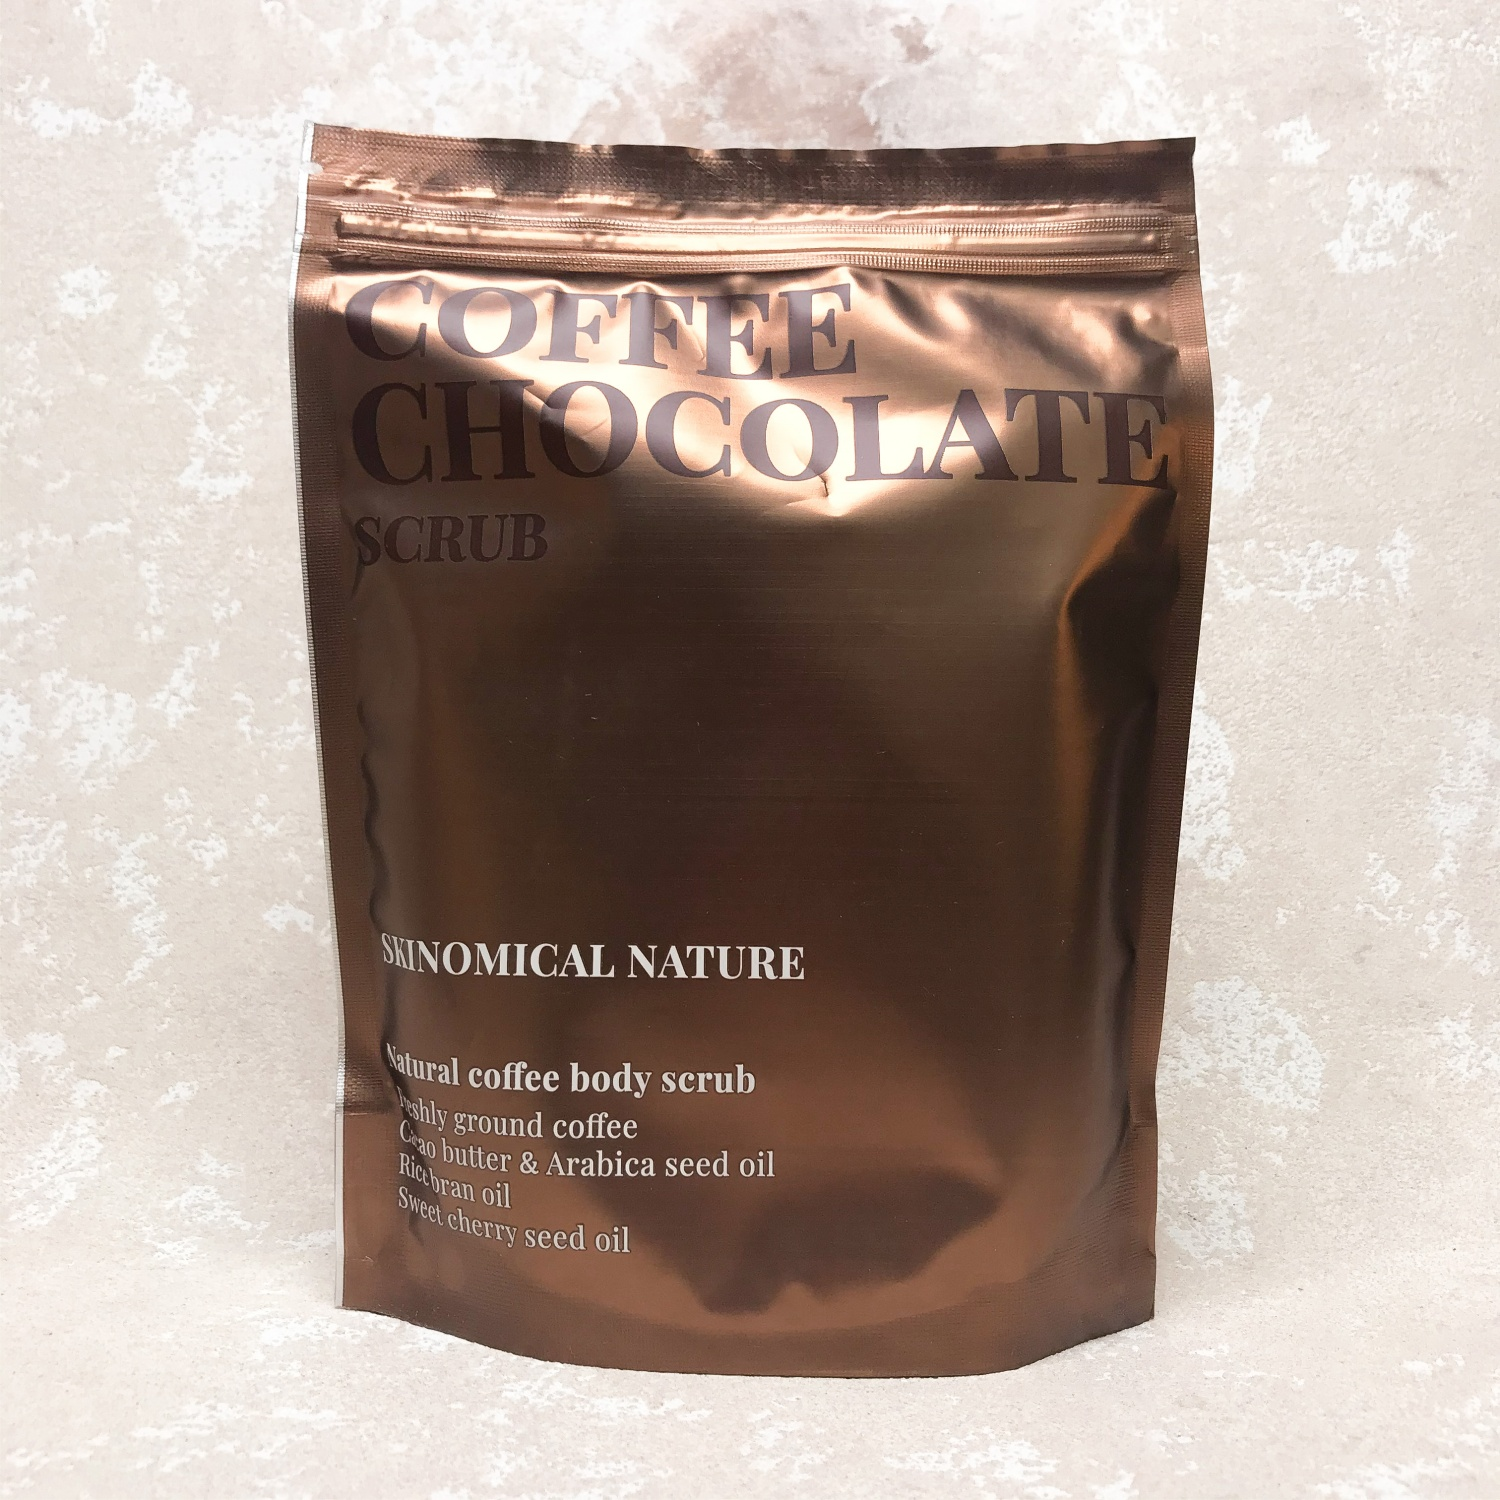 Skinomical Nature Coffee Chocolate Scrub